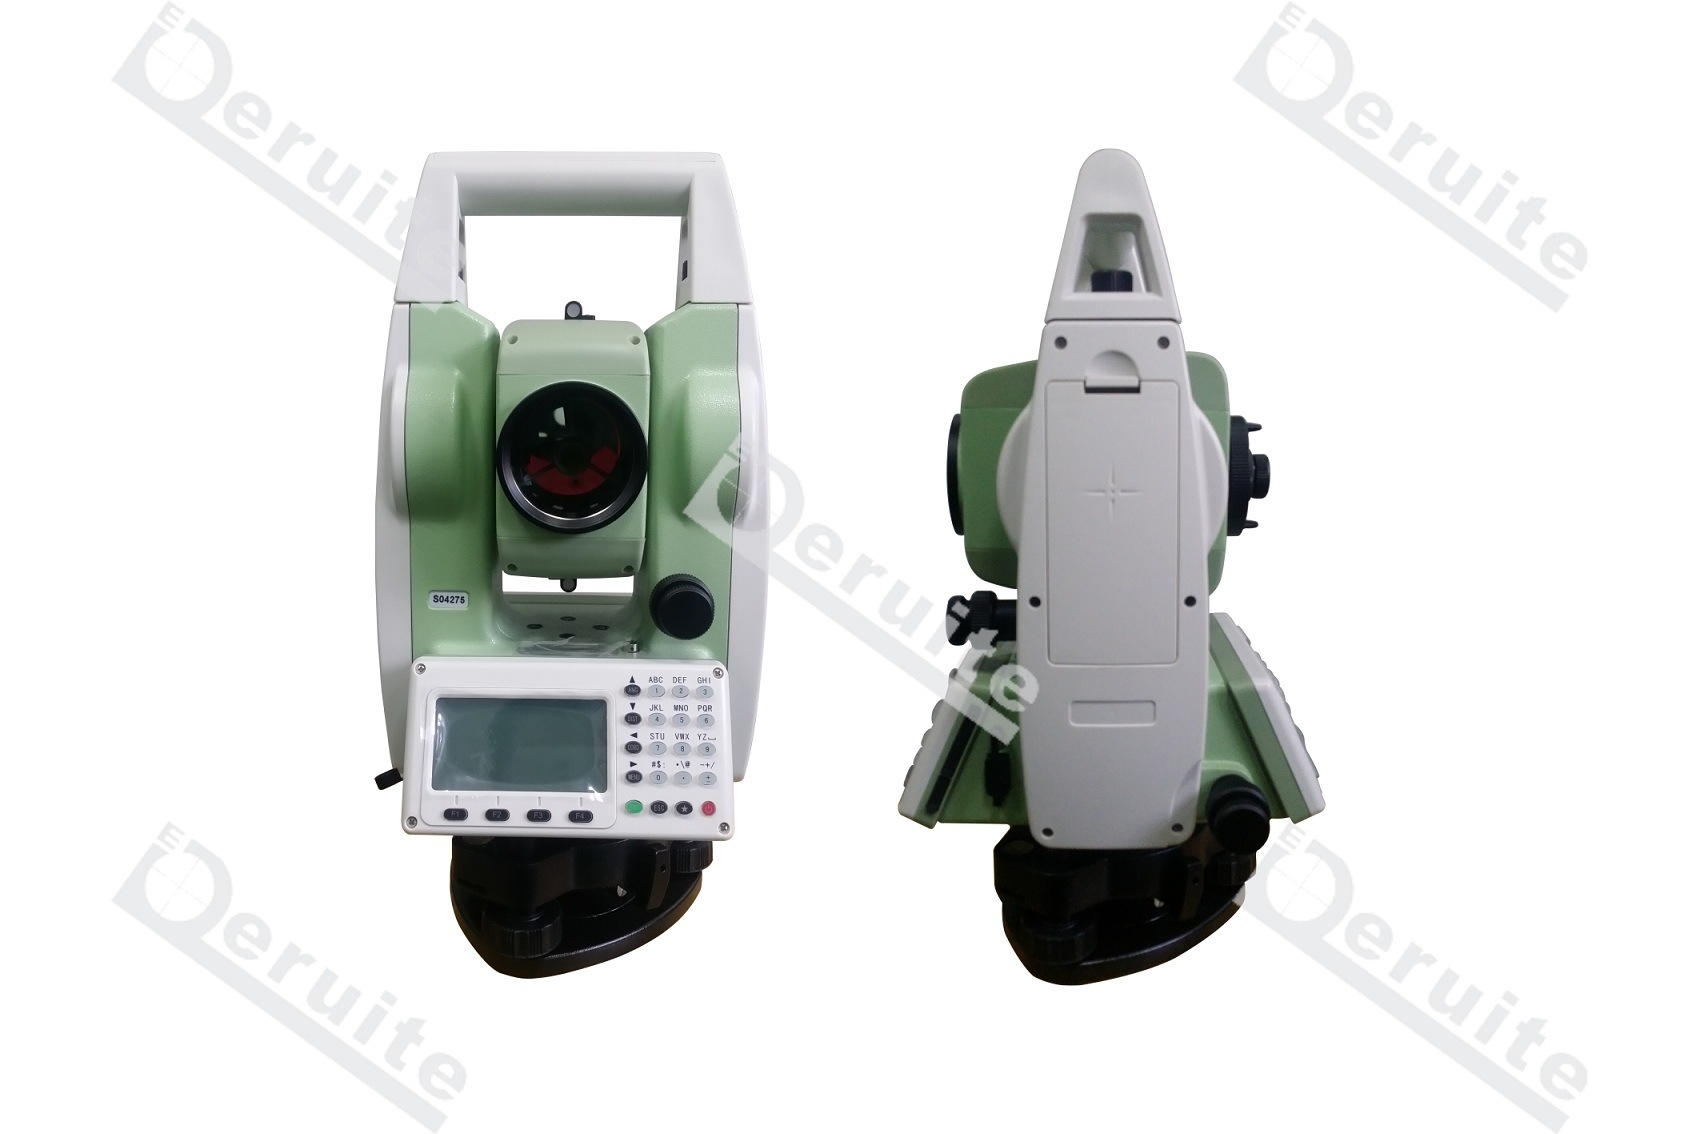 None-Prism 300m/ 600m Total Station ATS302r/ATS302rl